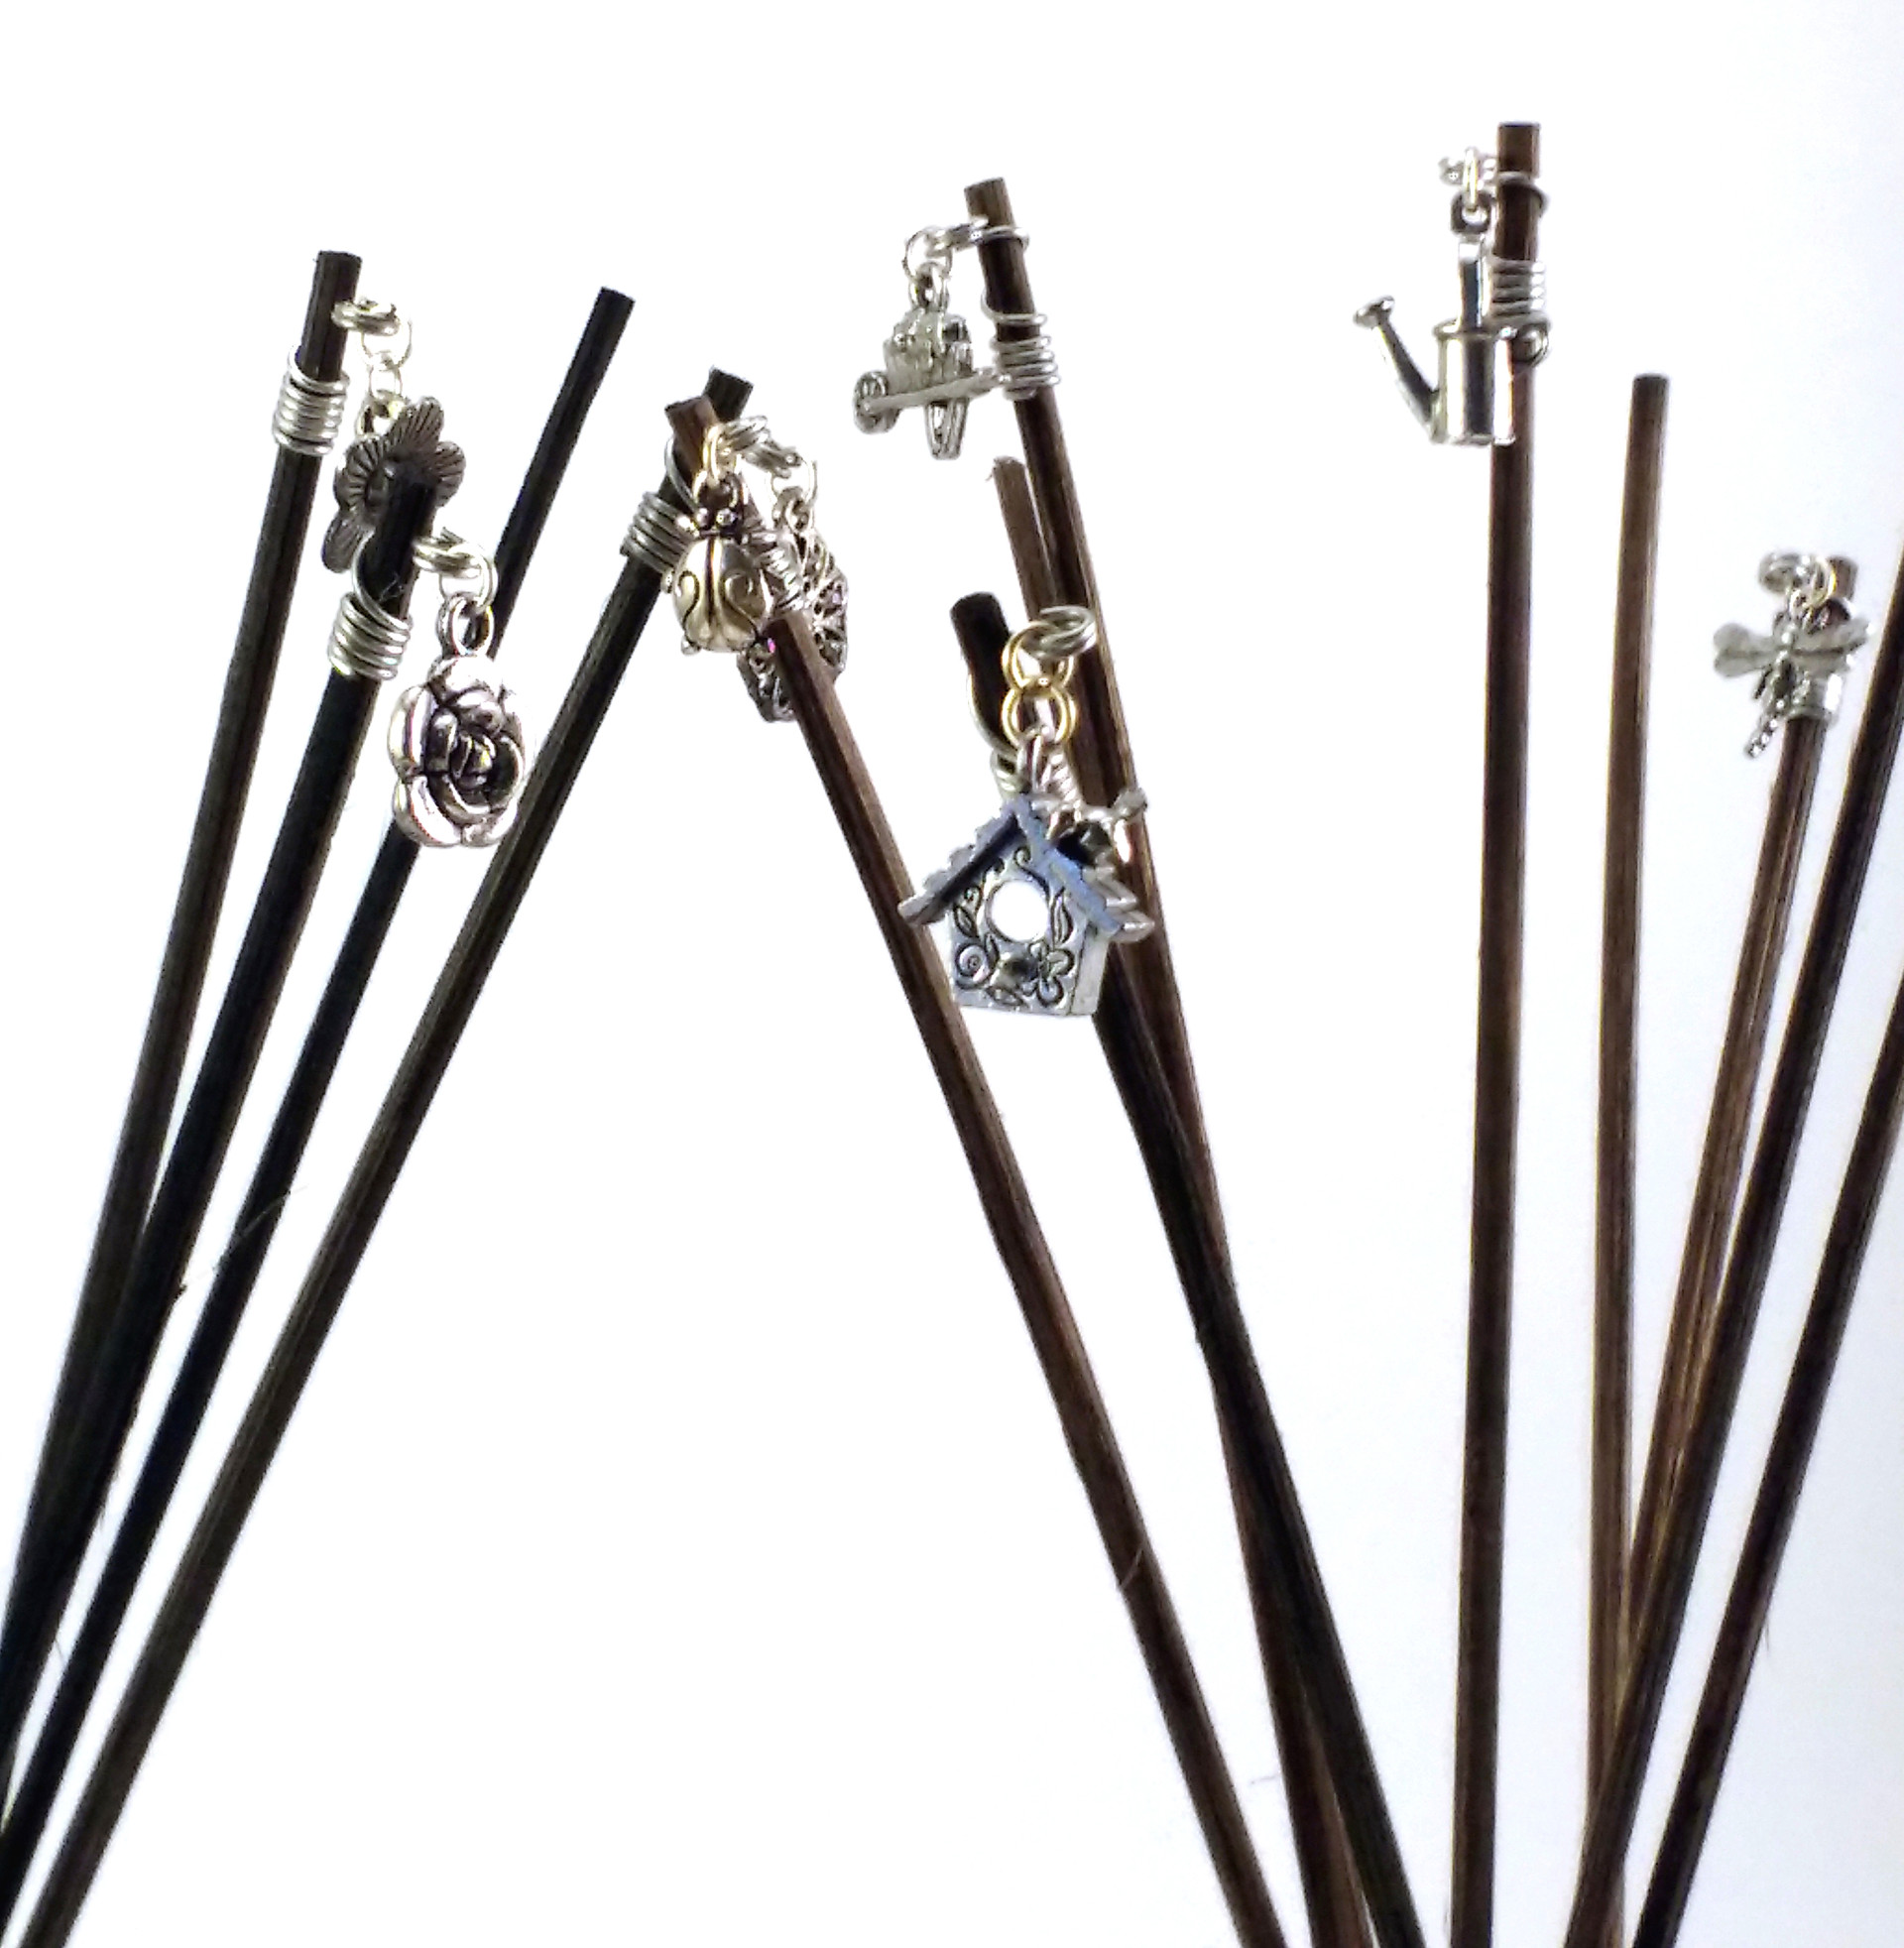 Diffuser Reeds With Charms